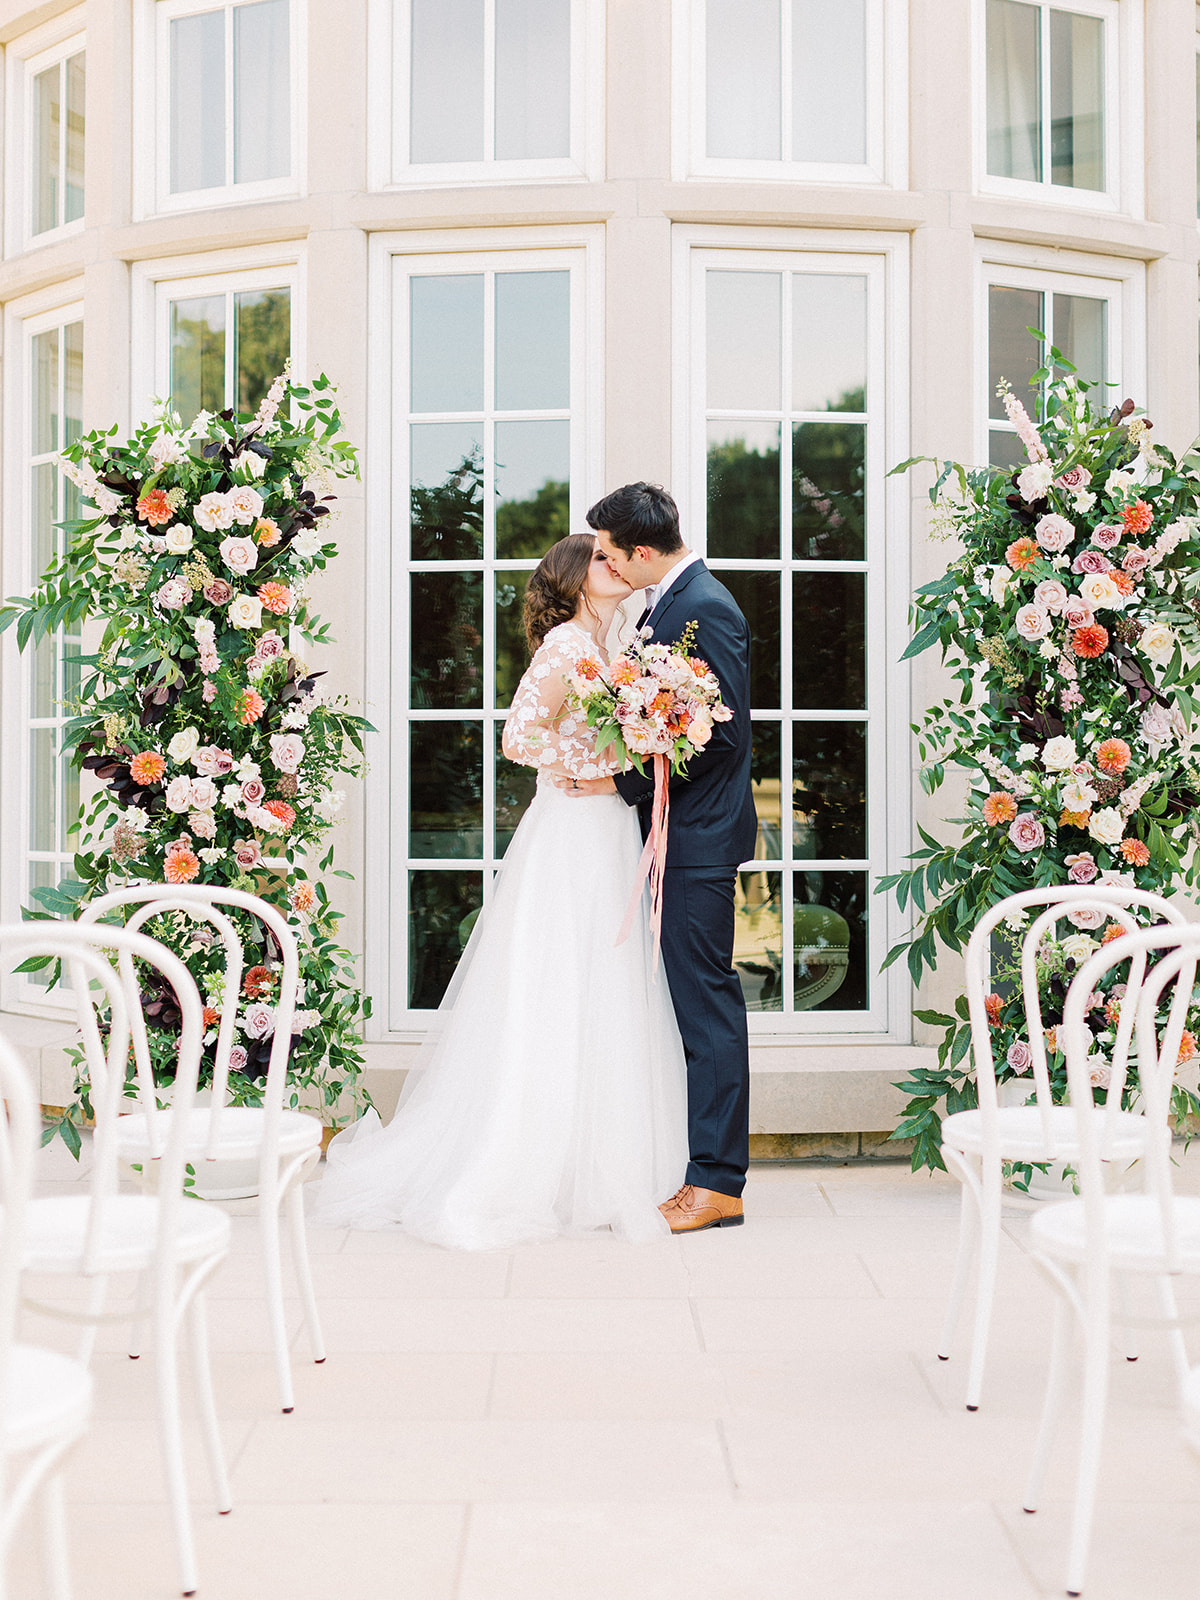 Planning a Micro-wedding or Elopement: Planning Advice on Alexa Kay Events